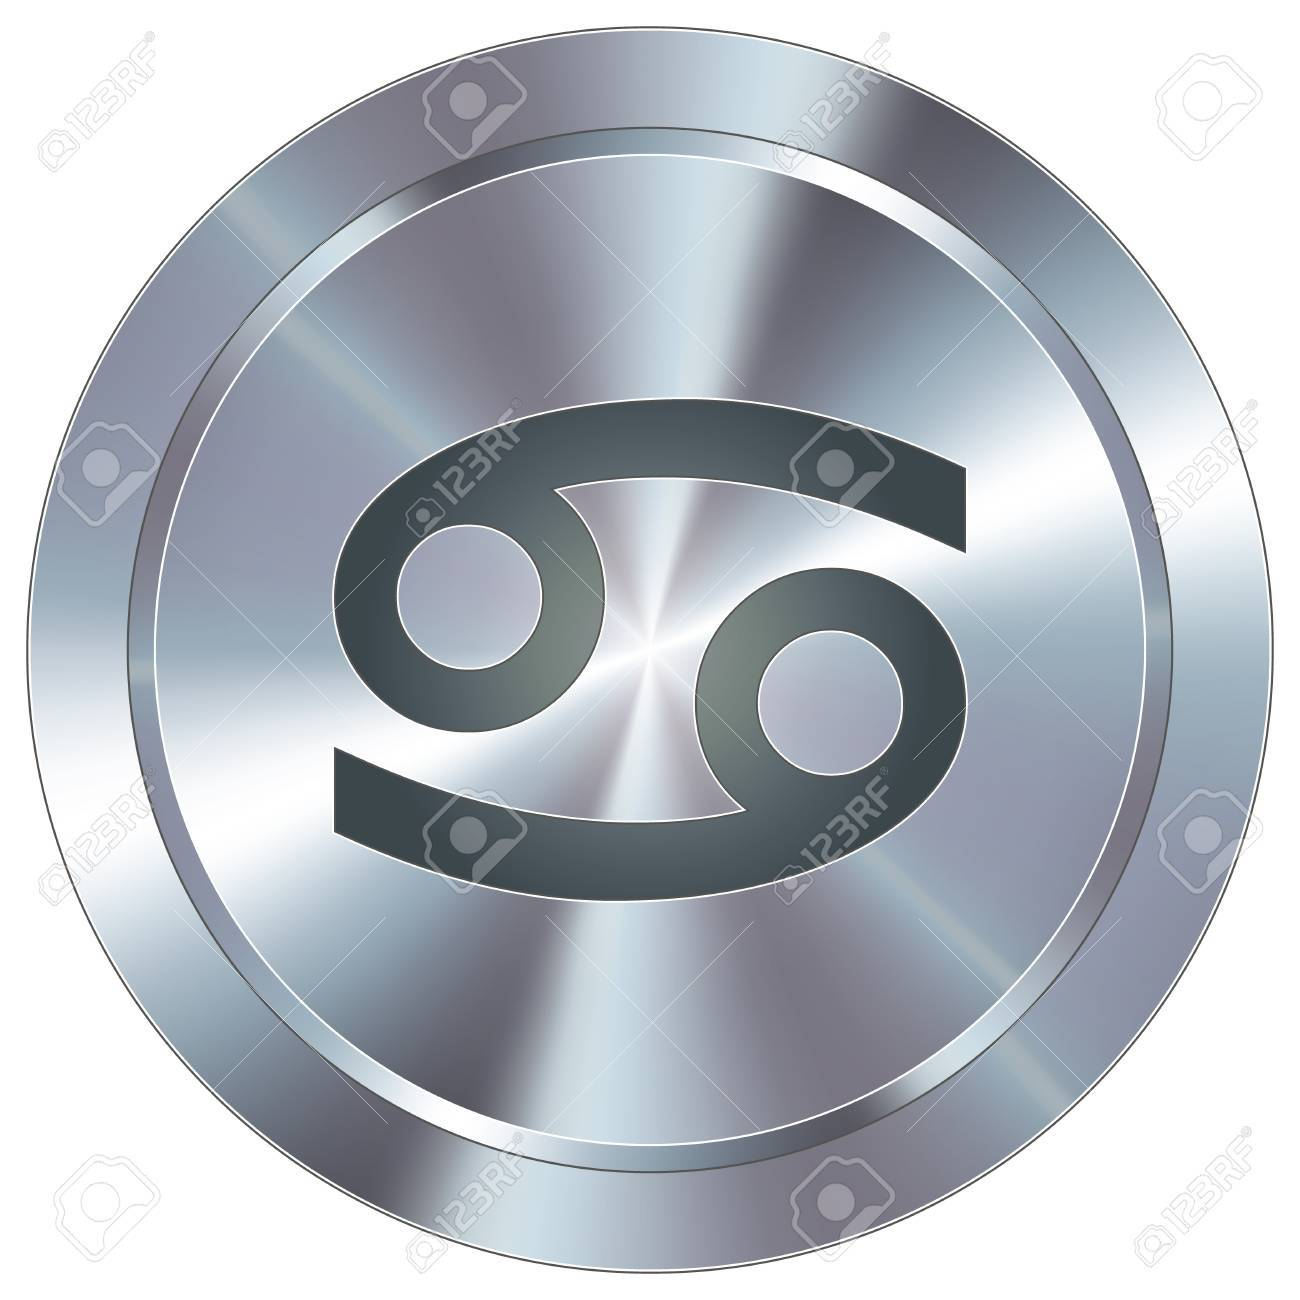 Cancer icon on round stainless steel modern industrial button Stock Vector - 14666081